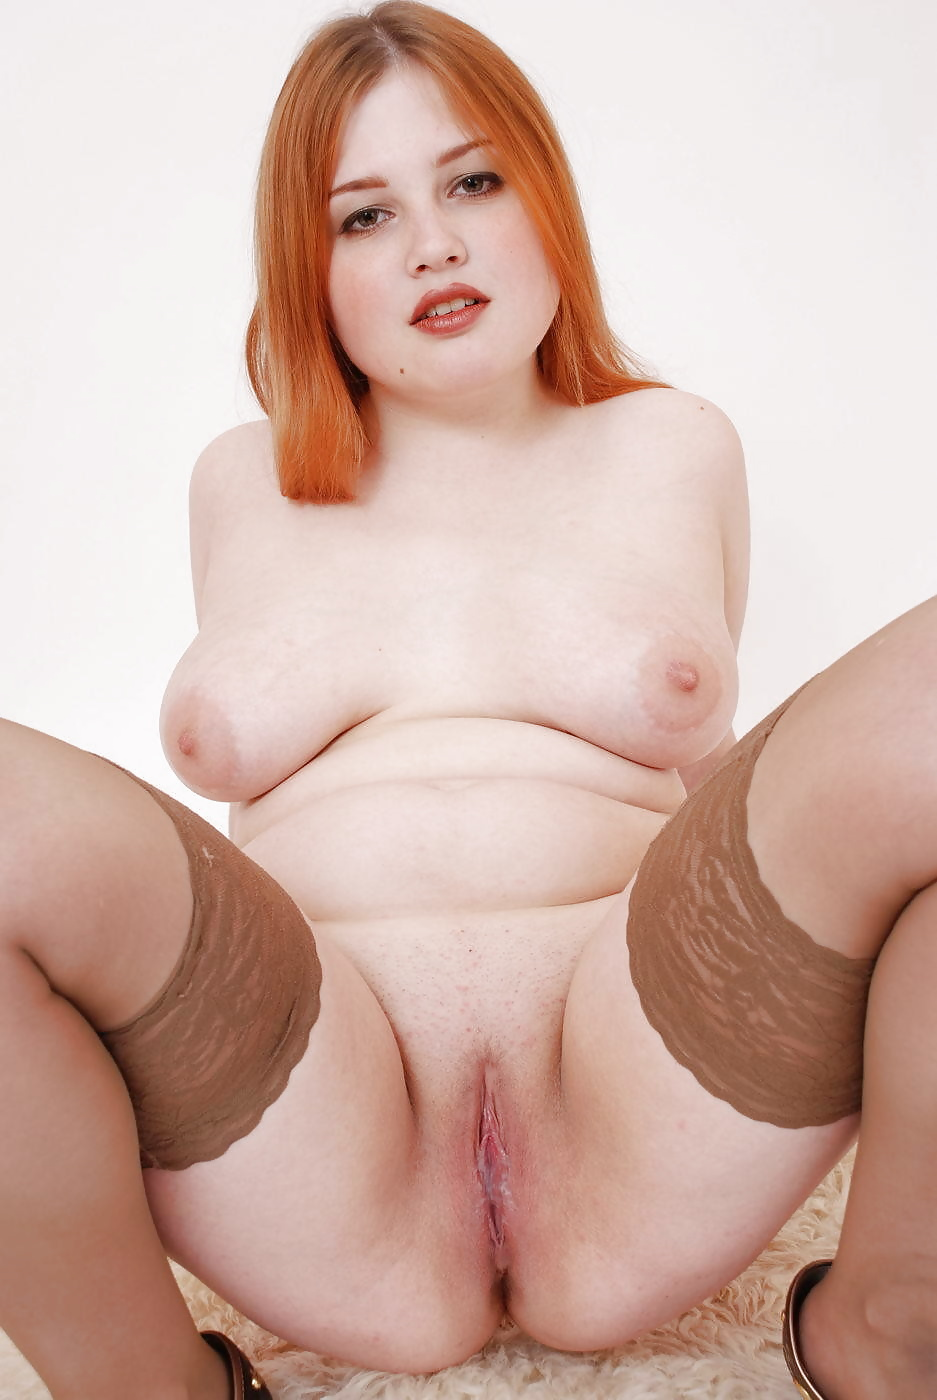 Pretty redhead girl from youngfatties 7